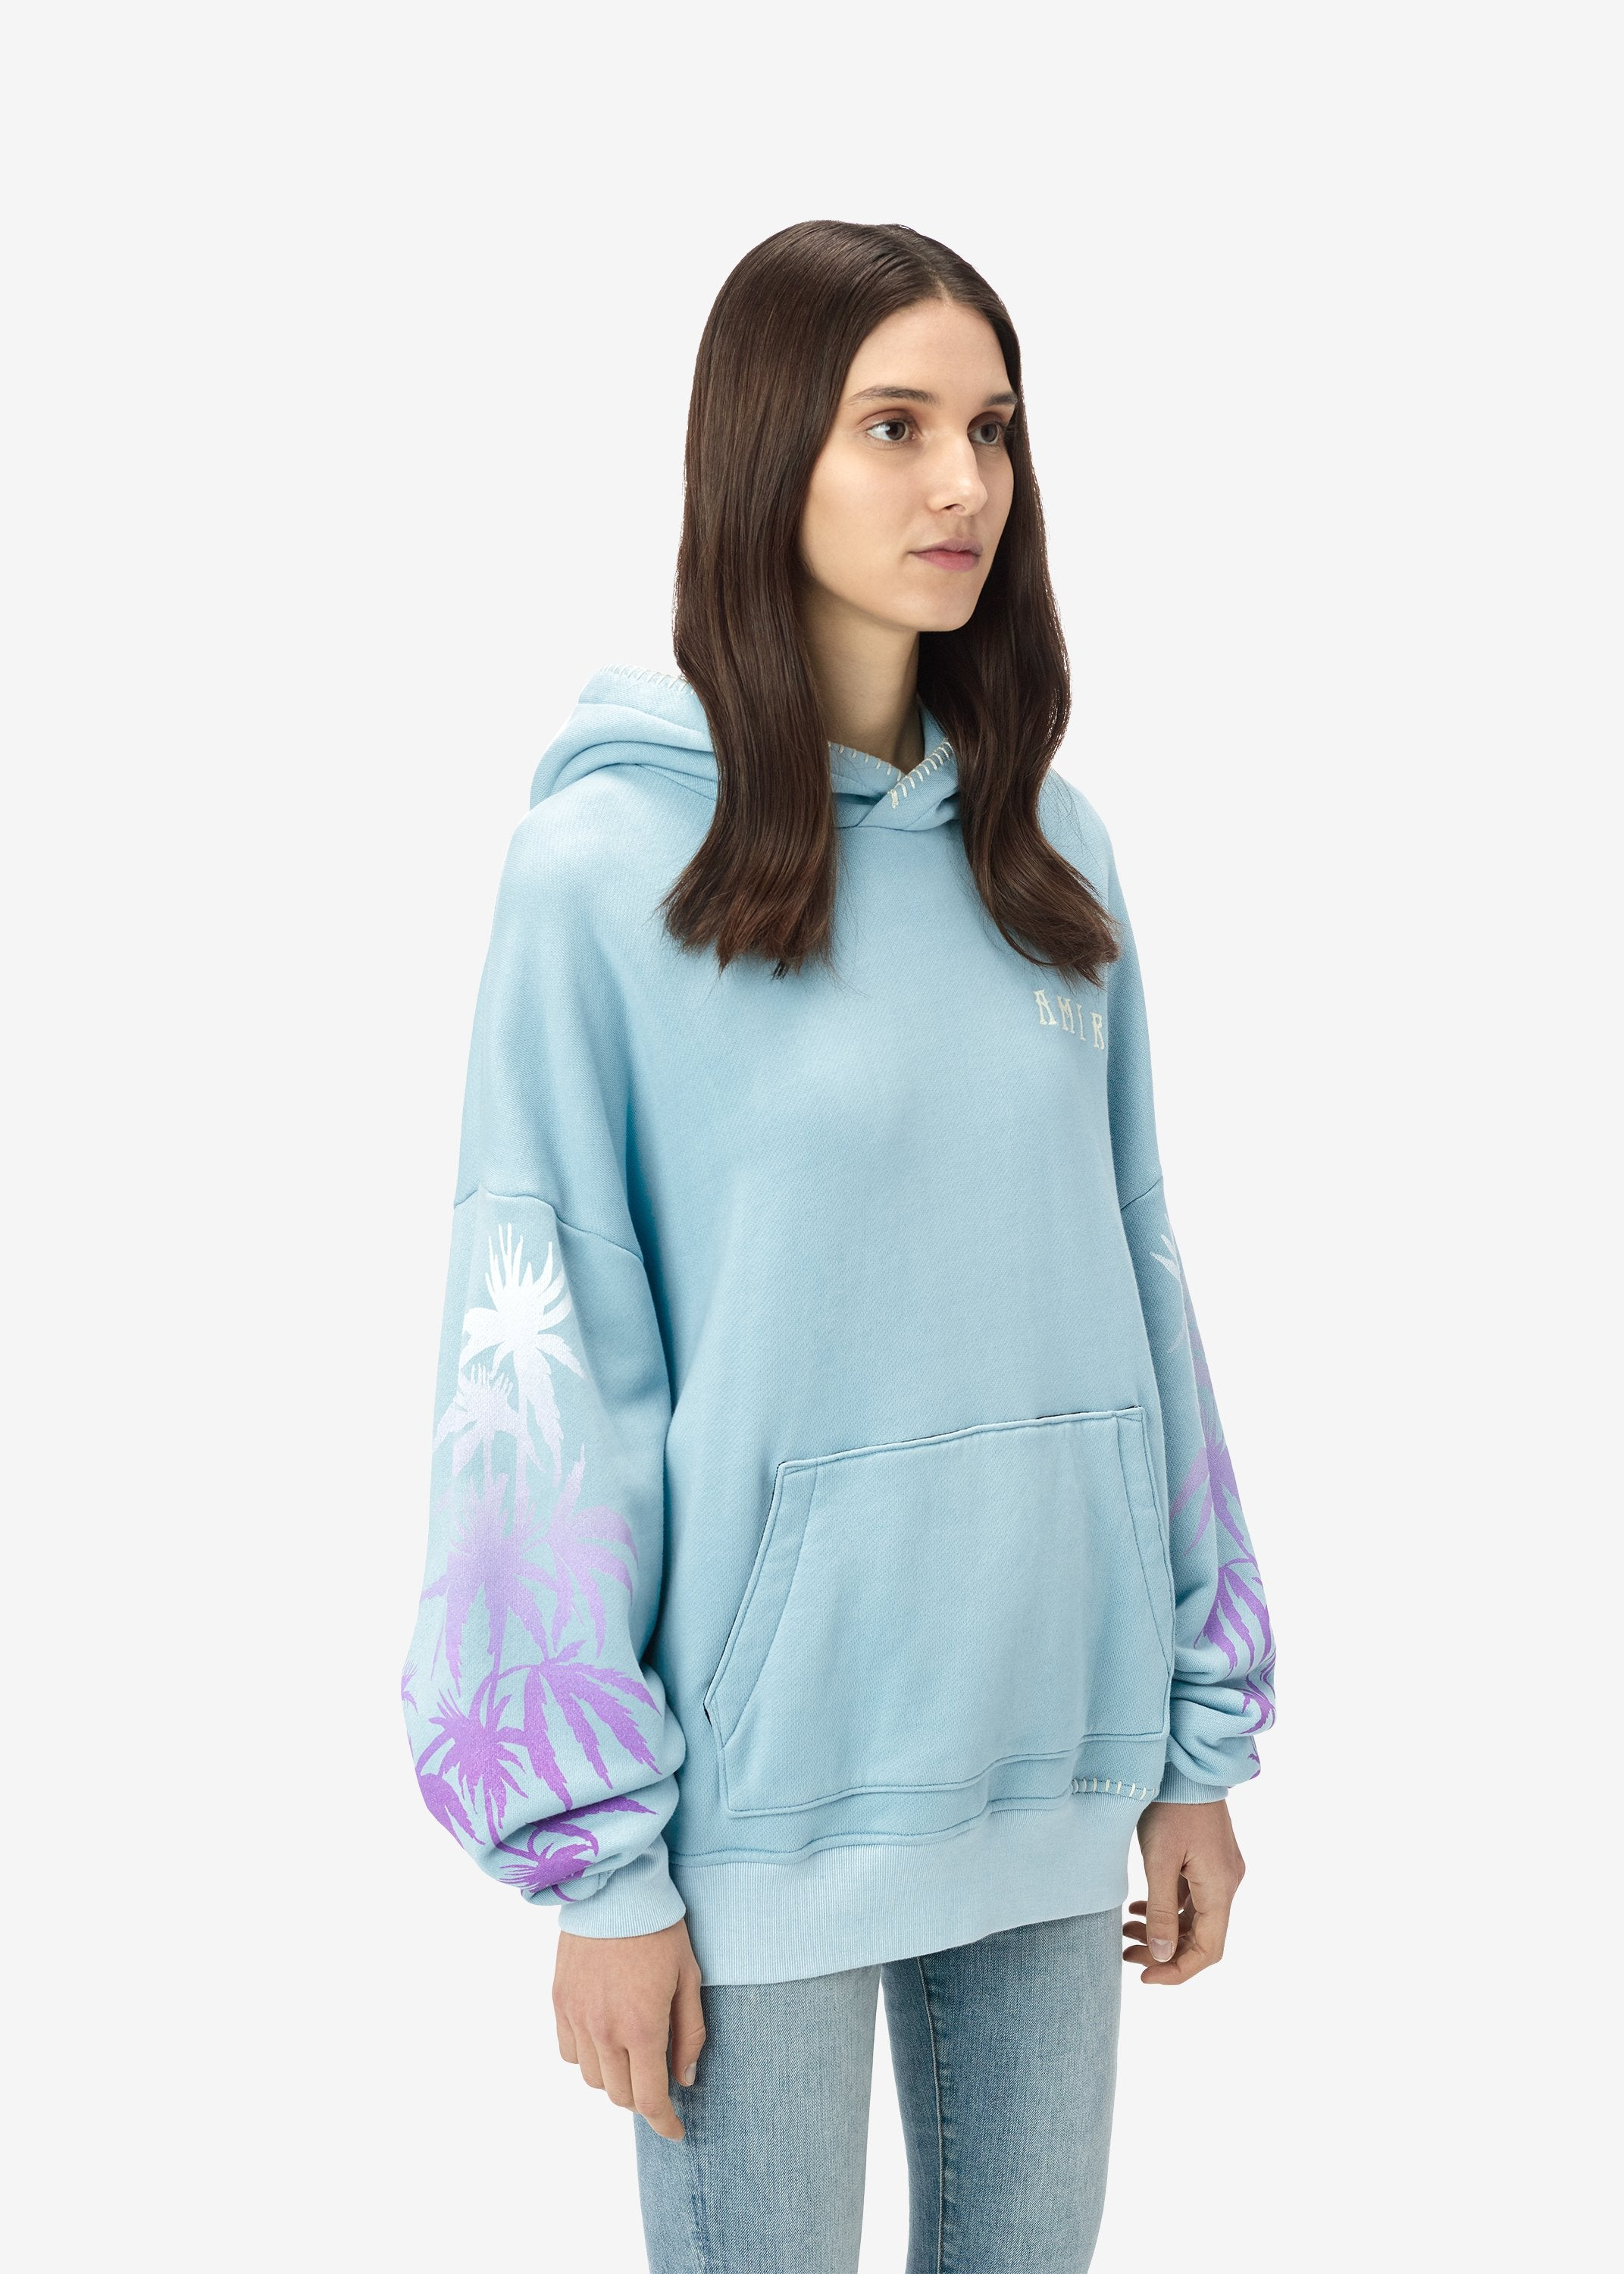 eternal-happiness-hoodie-light-blue-image-2